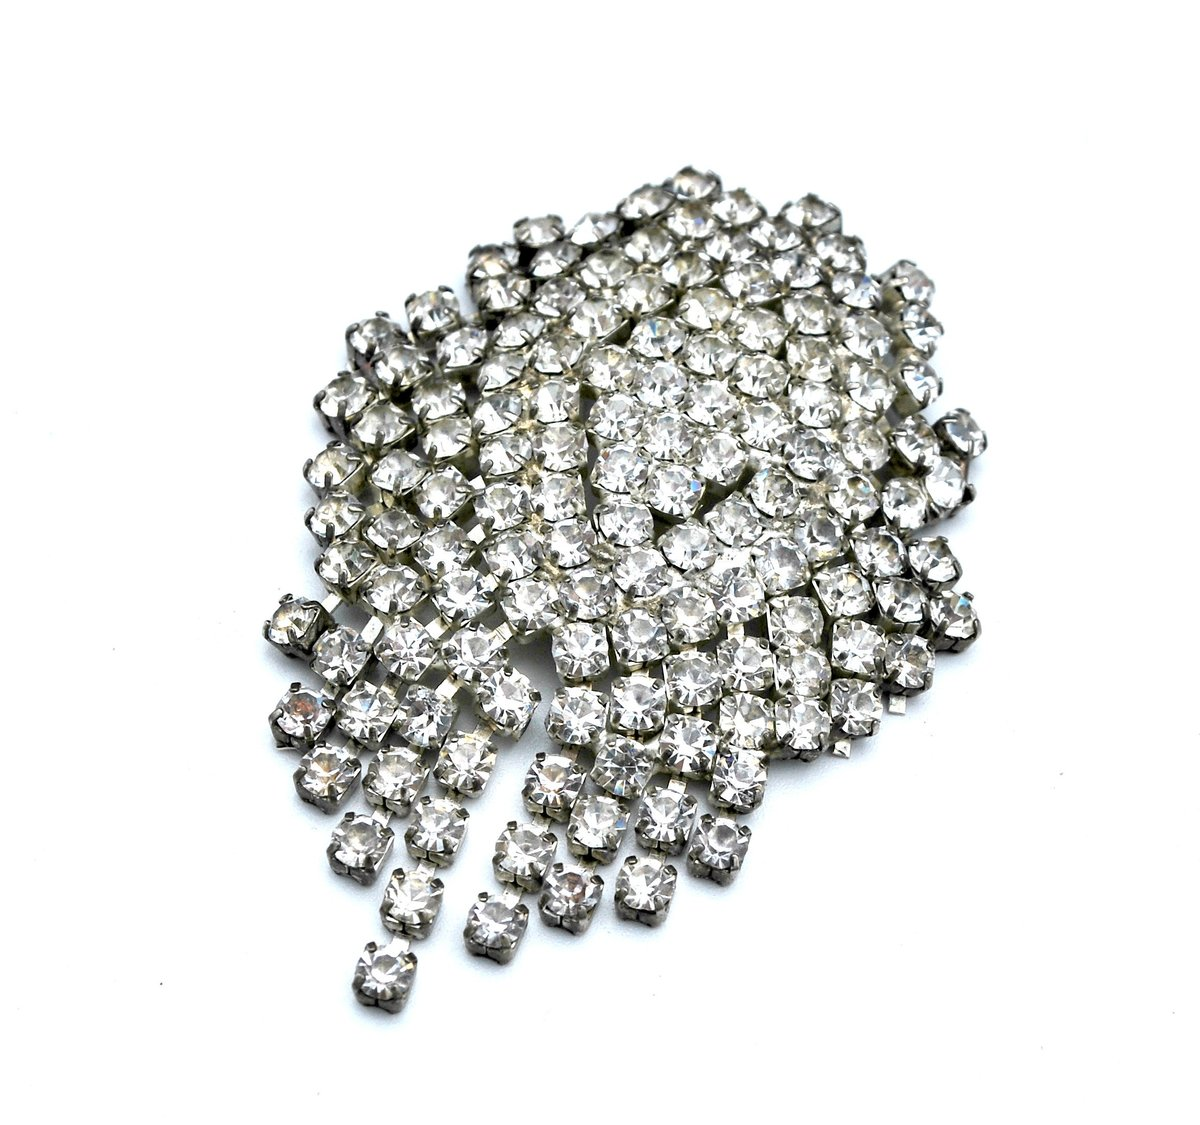 Excited to share the latest addition to my #etsy shop: Vintage clear rhinestone brooch dangle articulate crystal Mid Century pin https://t.co/g5t3id5x4E #clear #silver #midcentury #rhinestone #silvertone #pin #rhinestonebrooch #barbrooch #dangletassel https://t.co/rKYuhghvgX